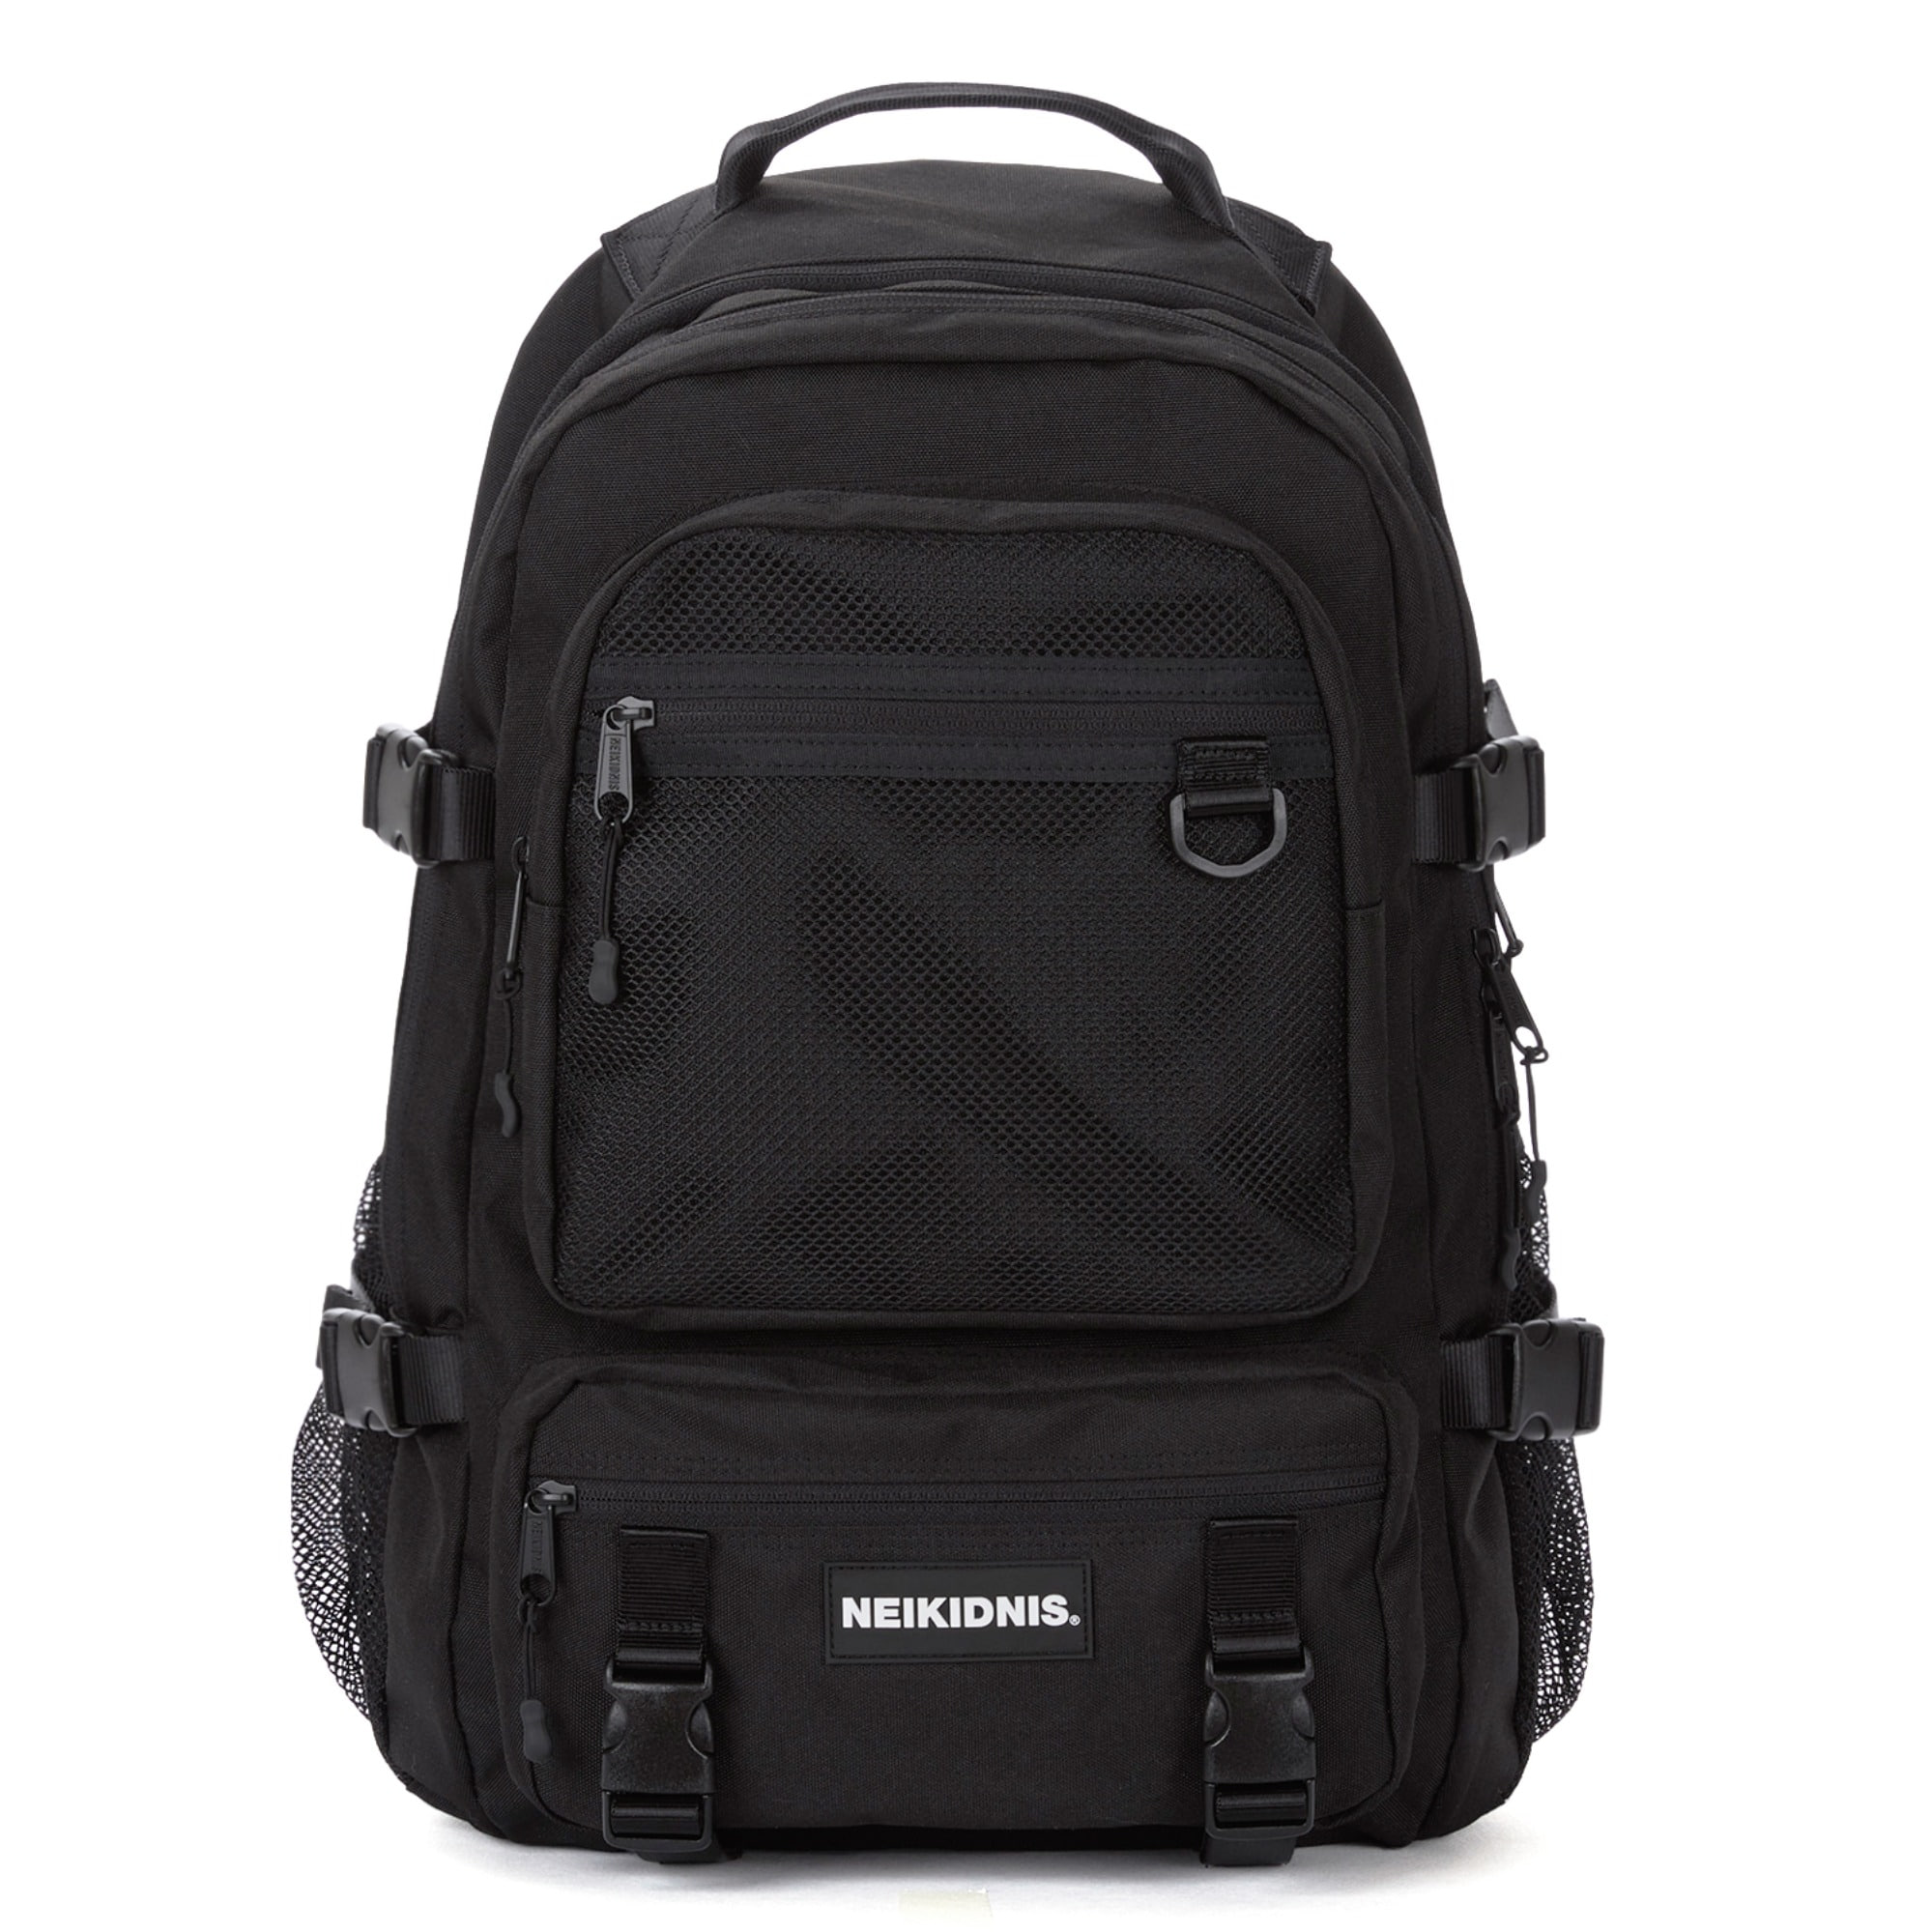 2019 PREMIER BACKPACK / BLACK